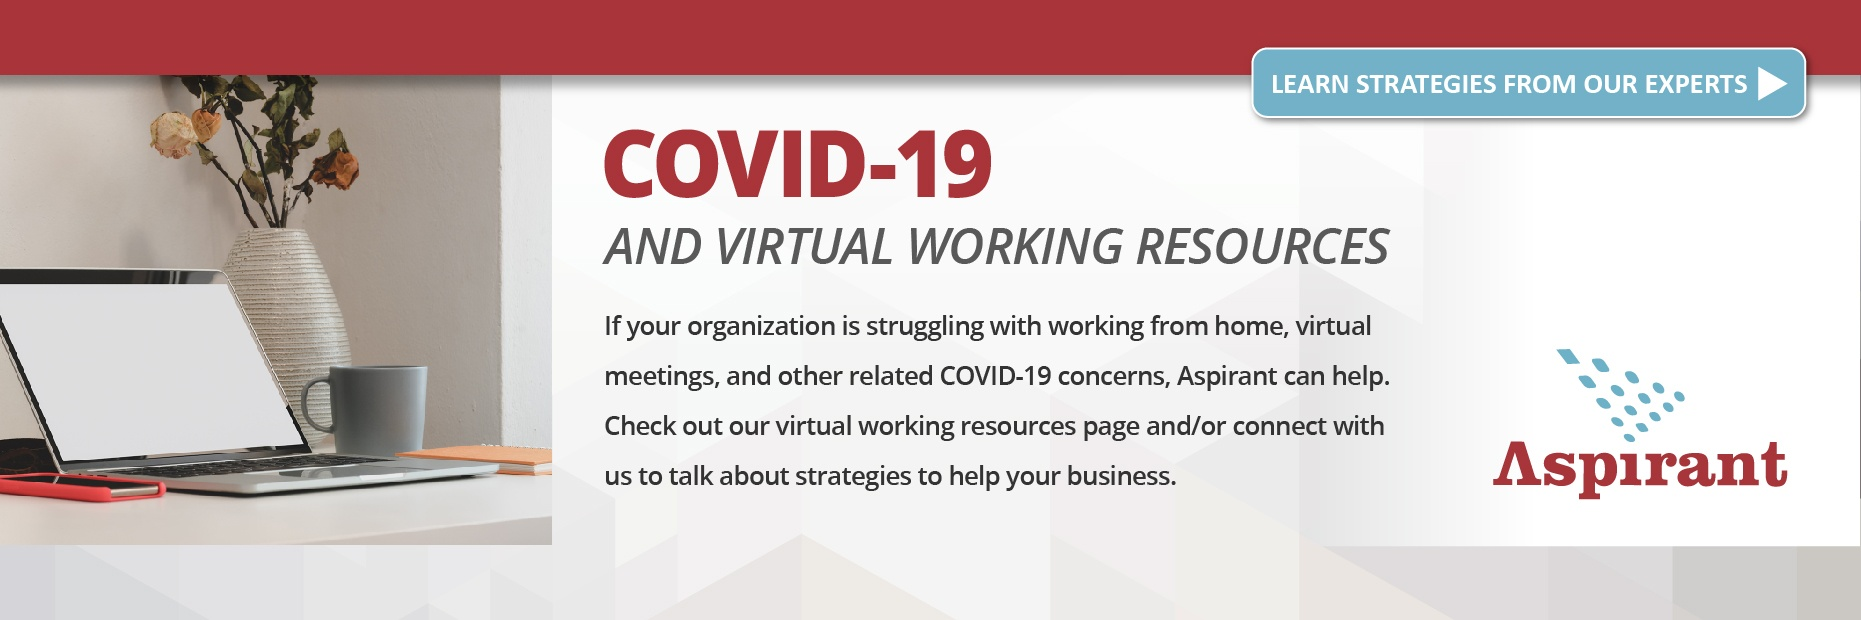 Struggling with transition to working from home, virtual meetings, and other  business concerns related to COVID-19? Connect with us to brainstorm and talk about strategies.